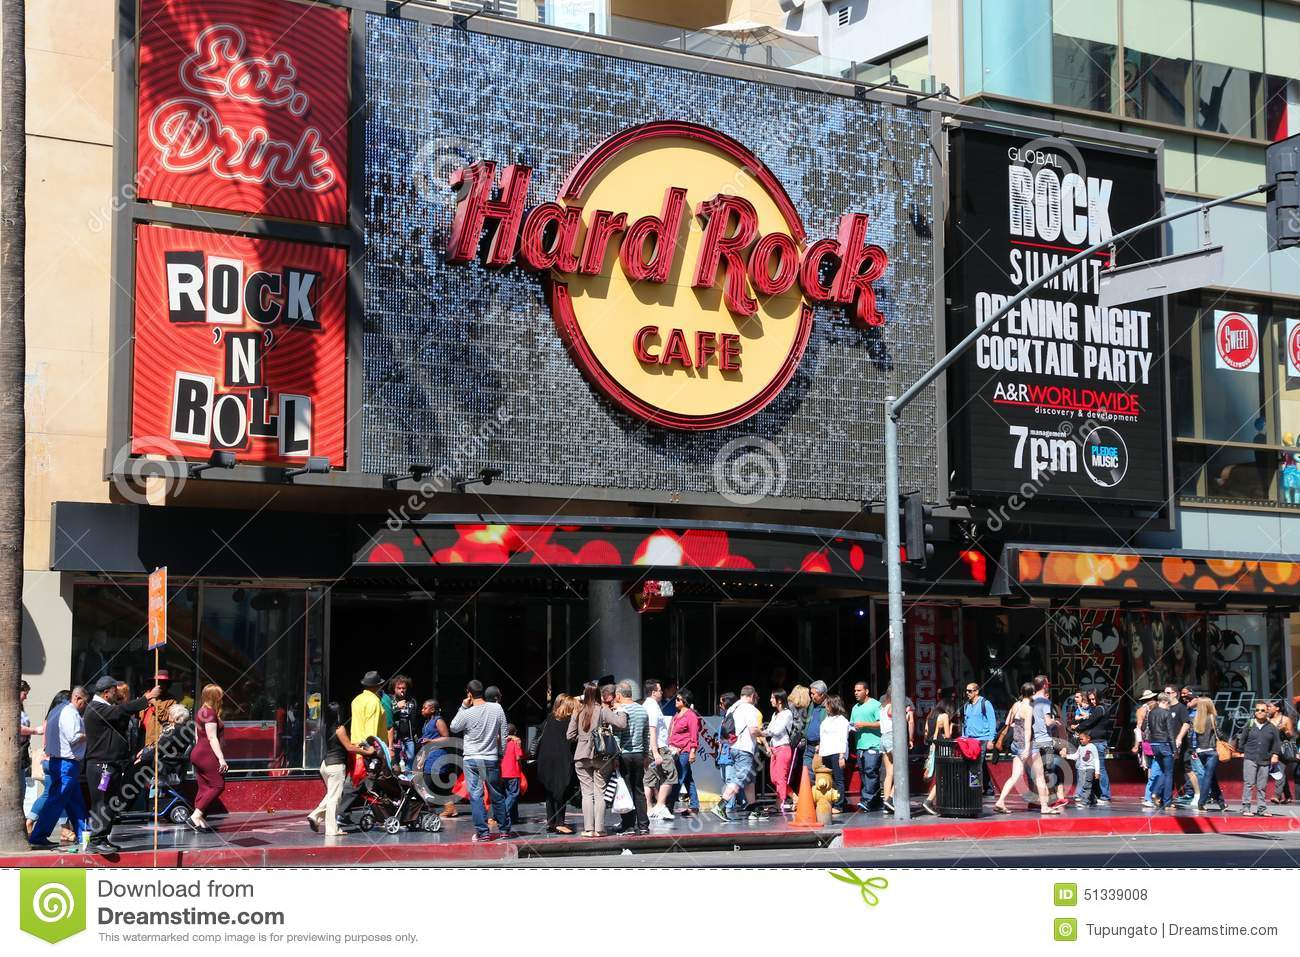 The history of hard rock cafe tourism essay